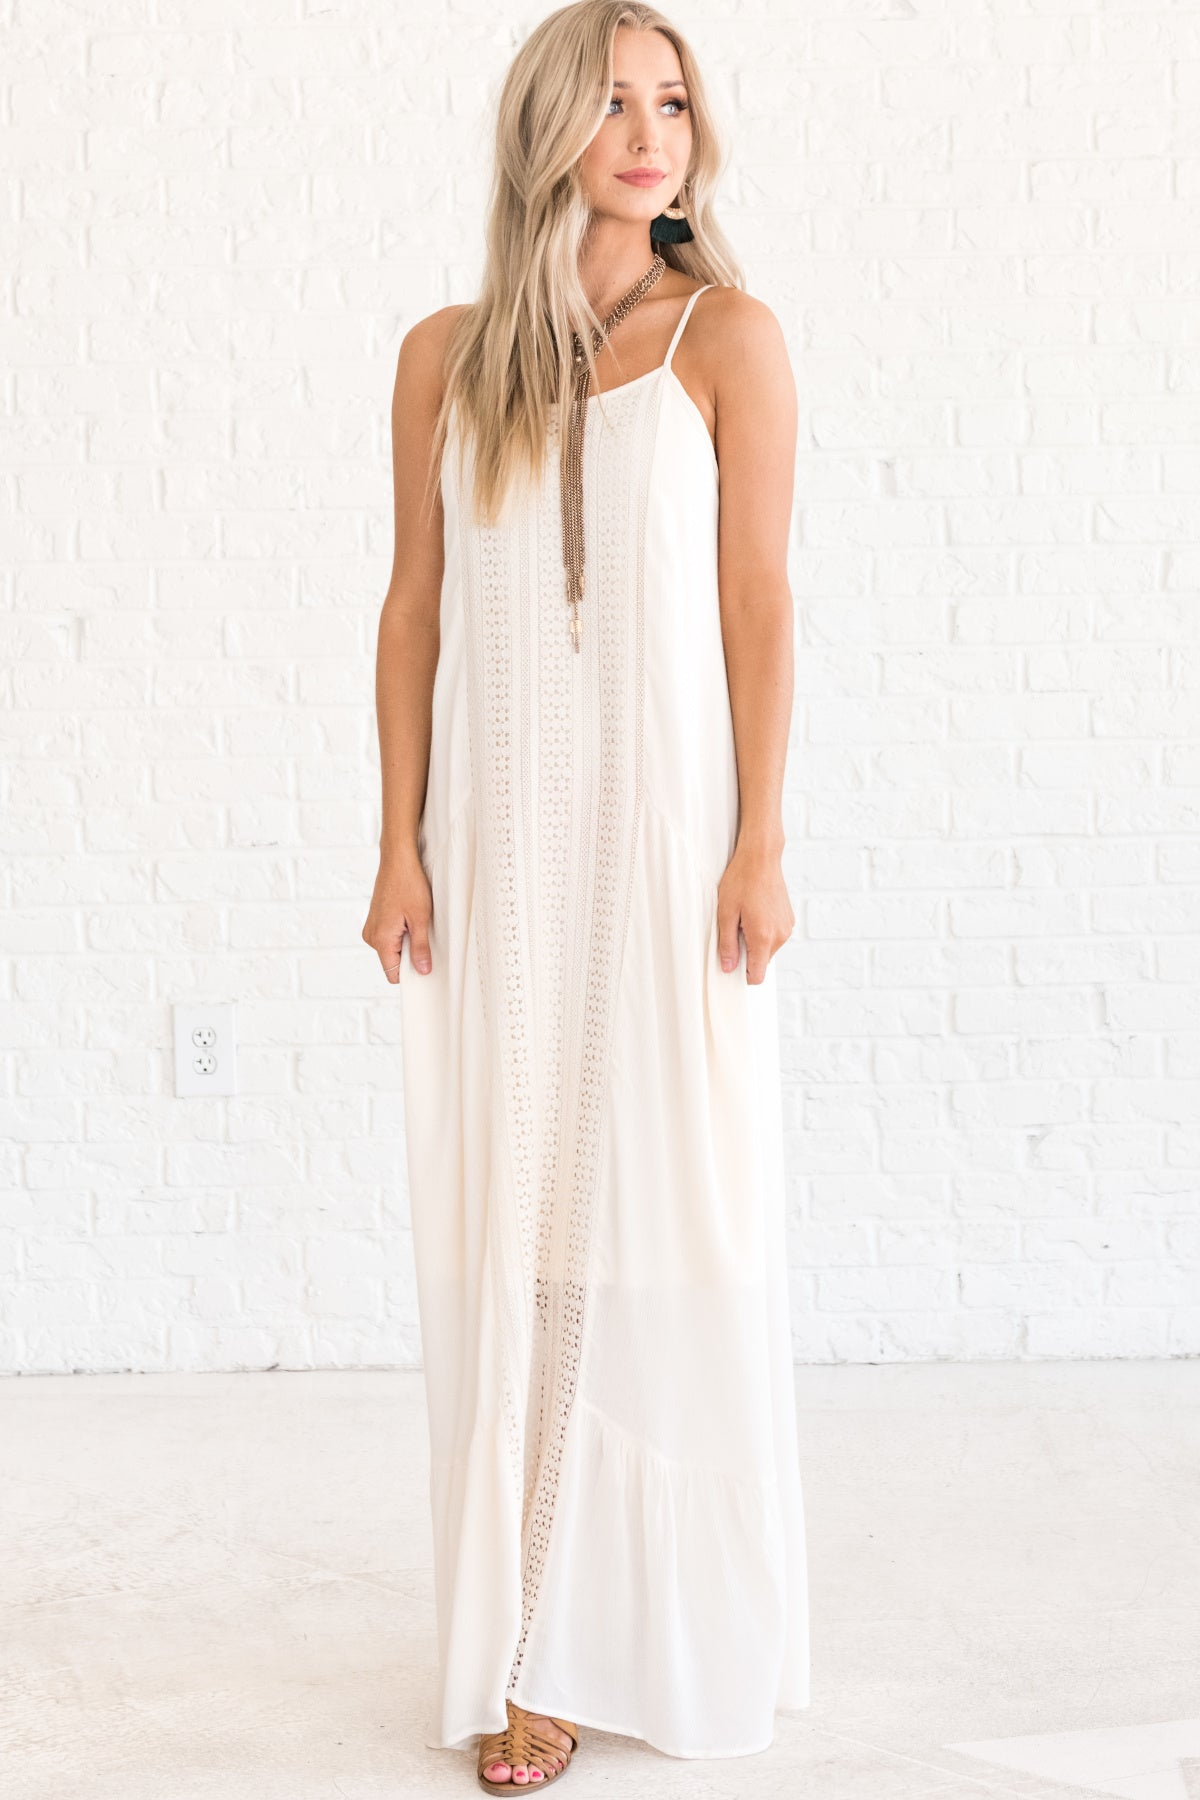 White Long Summer Dresses